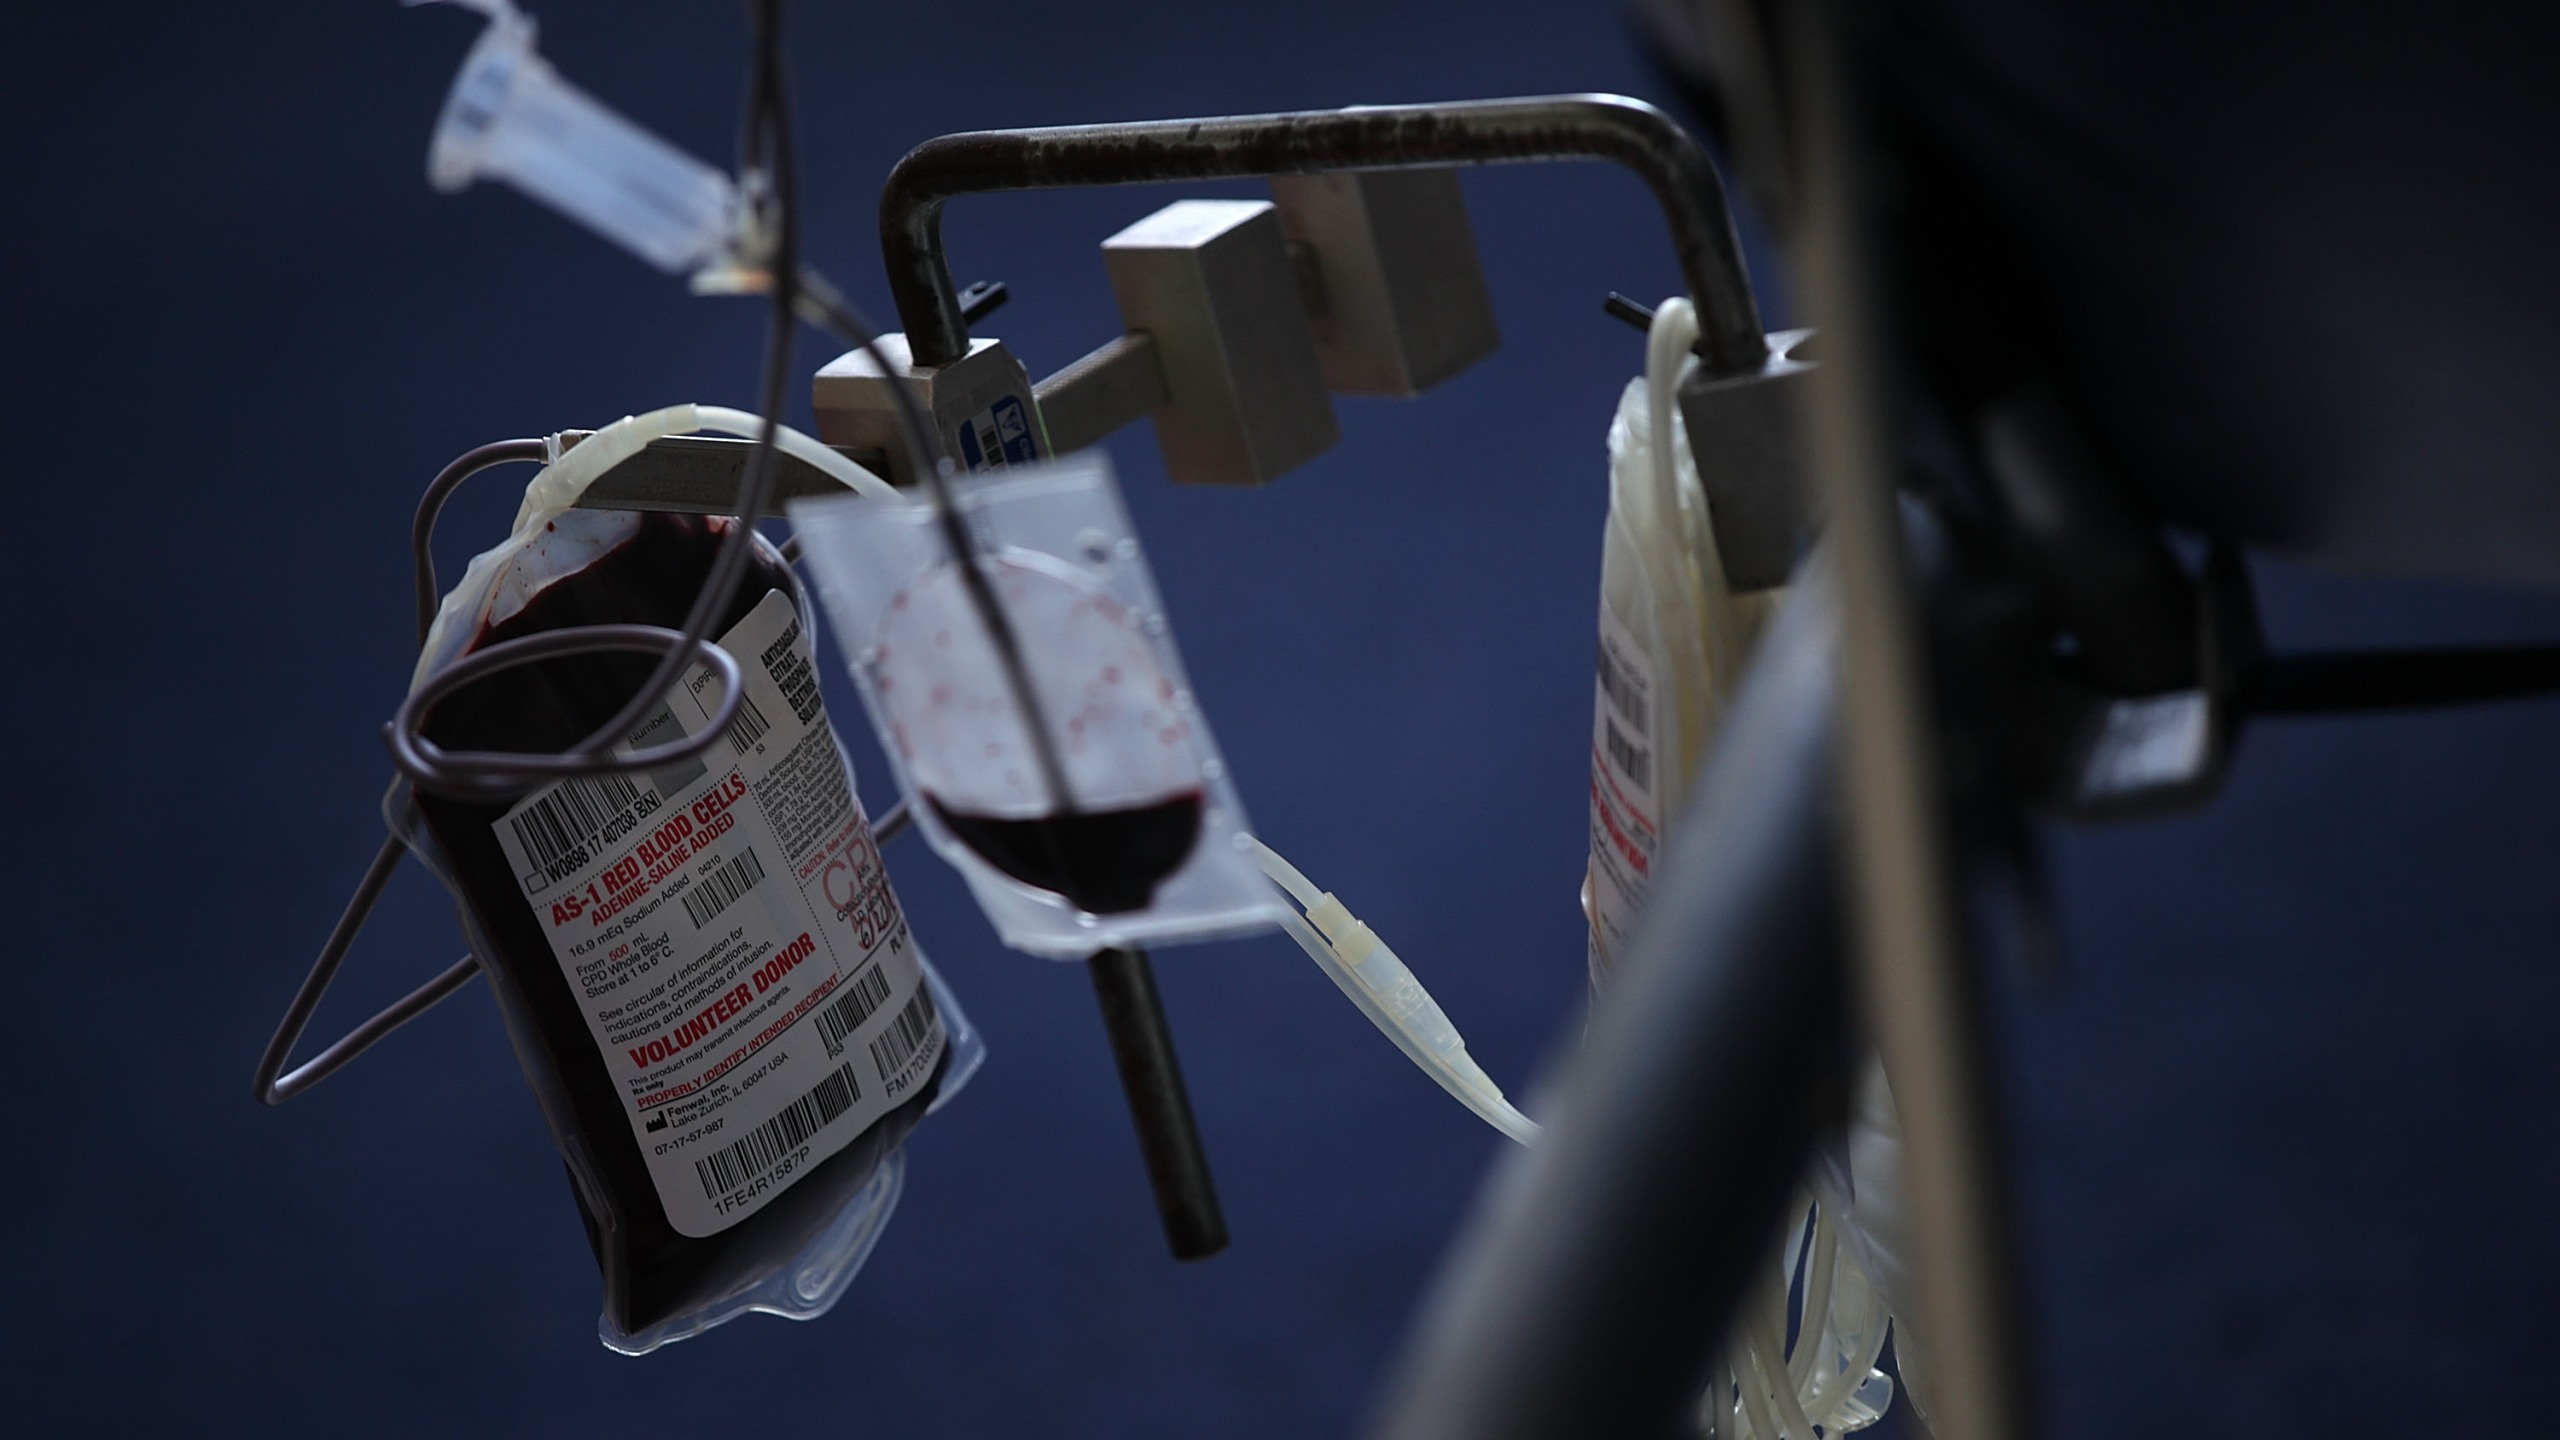 Blood is collected from a donor into a bag during a blood drive in this file photo. (Alex Wong/Getty Images)